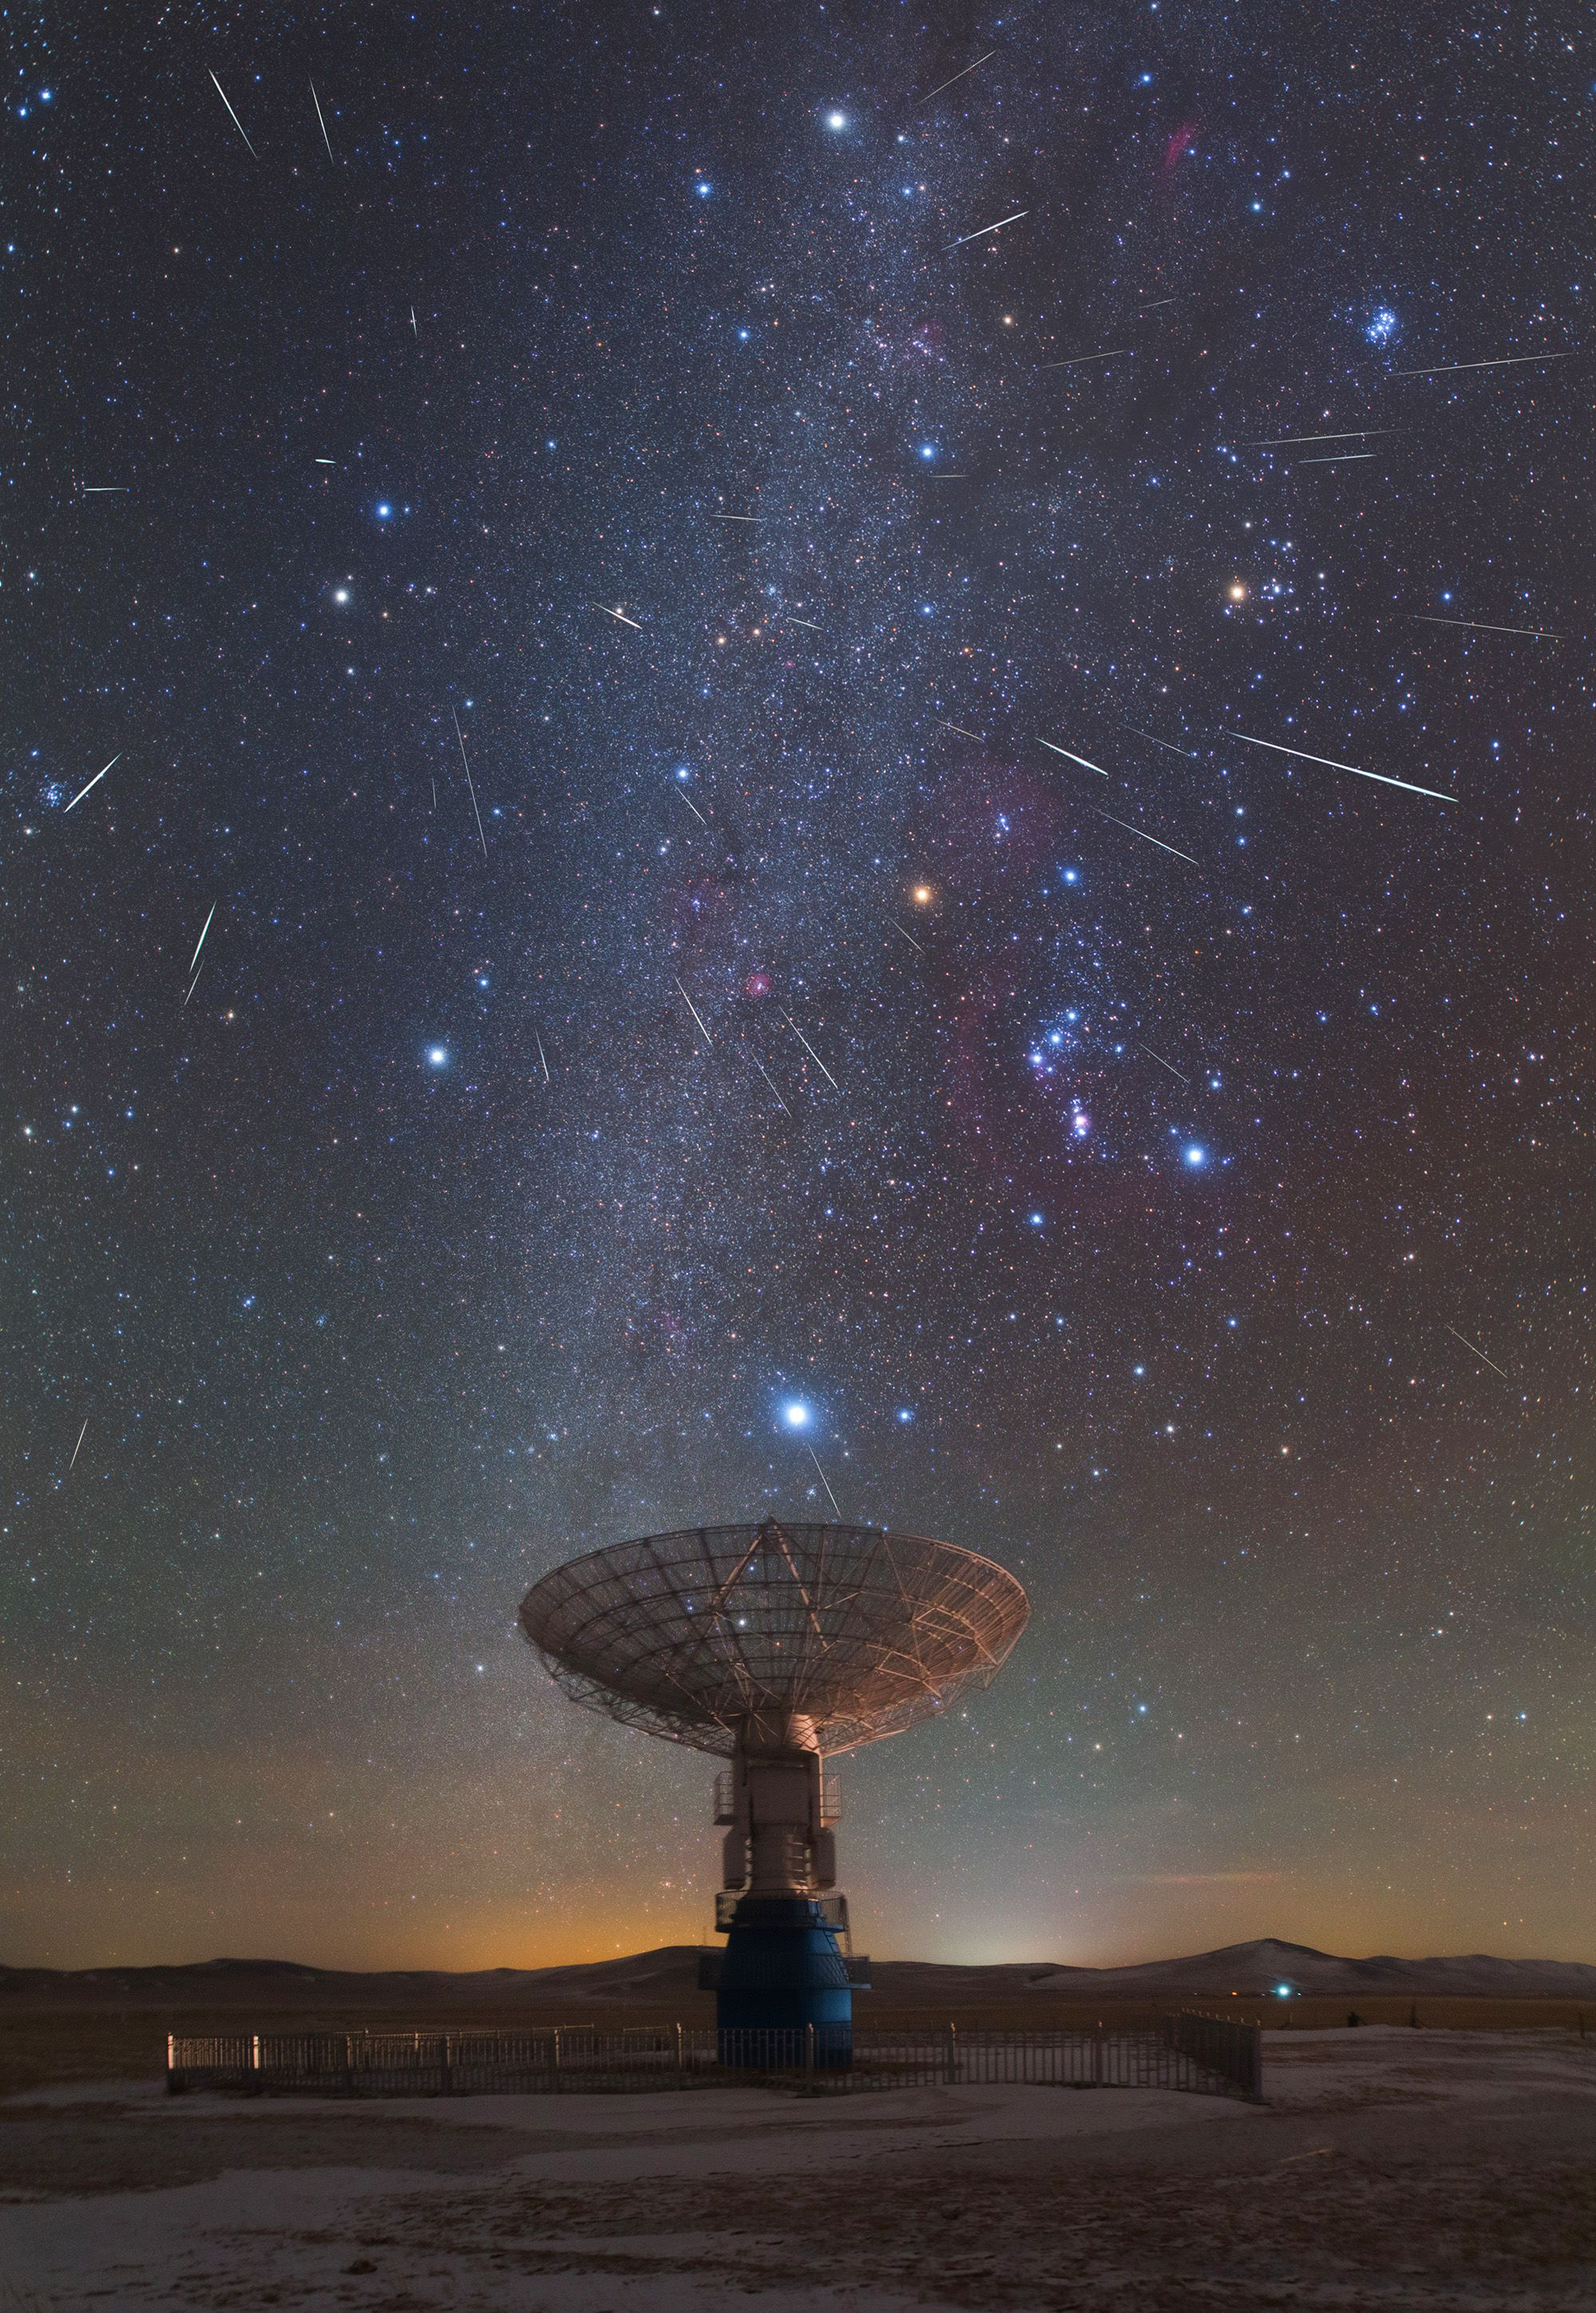 Earth S Annual Geminid Meteor Shower Above A Radio Telescope Dish Of Muser A Solar Dedicated Radio Telescope Array A Astronomy Pictures Meteor Shower Astronomy